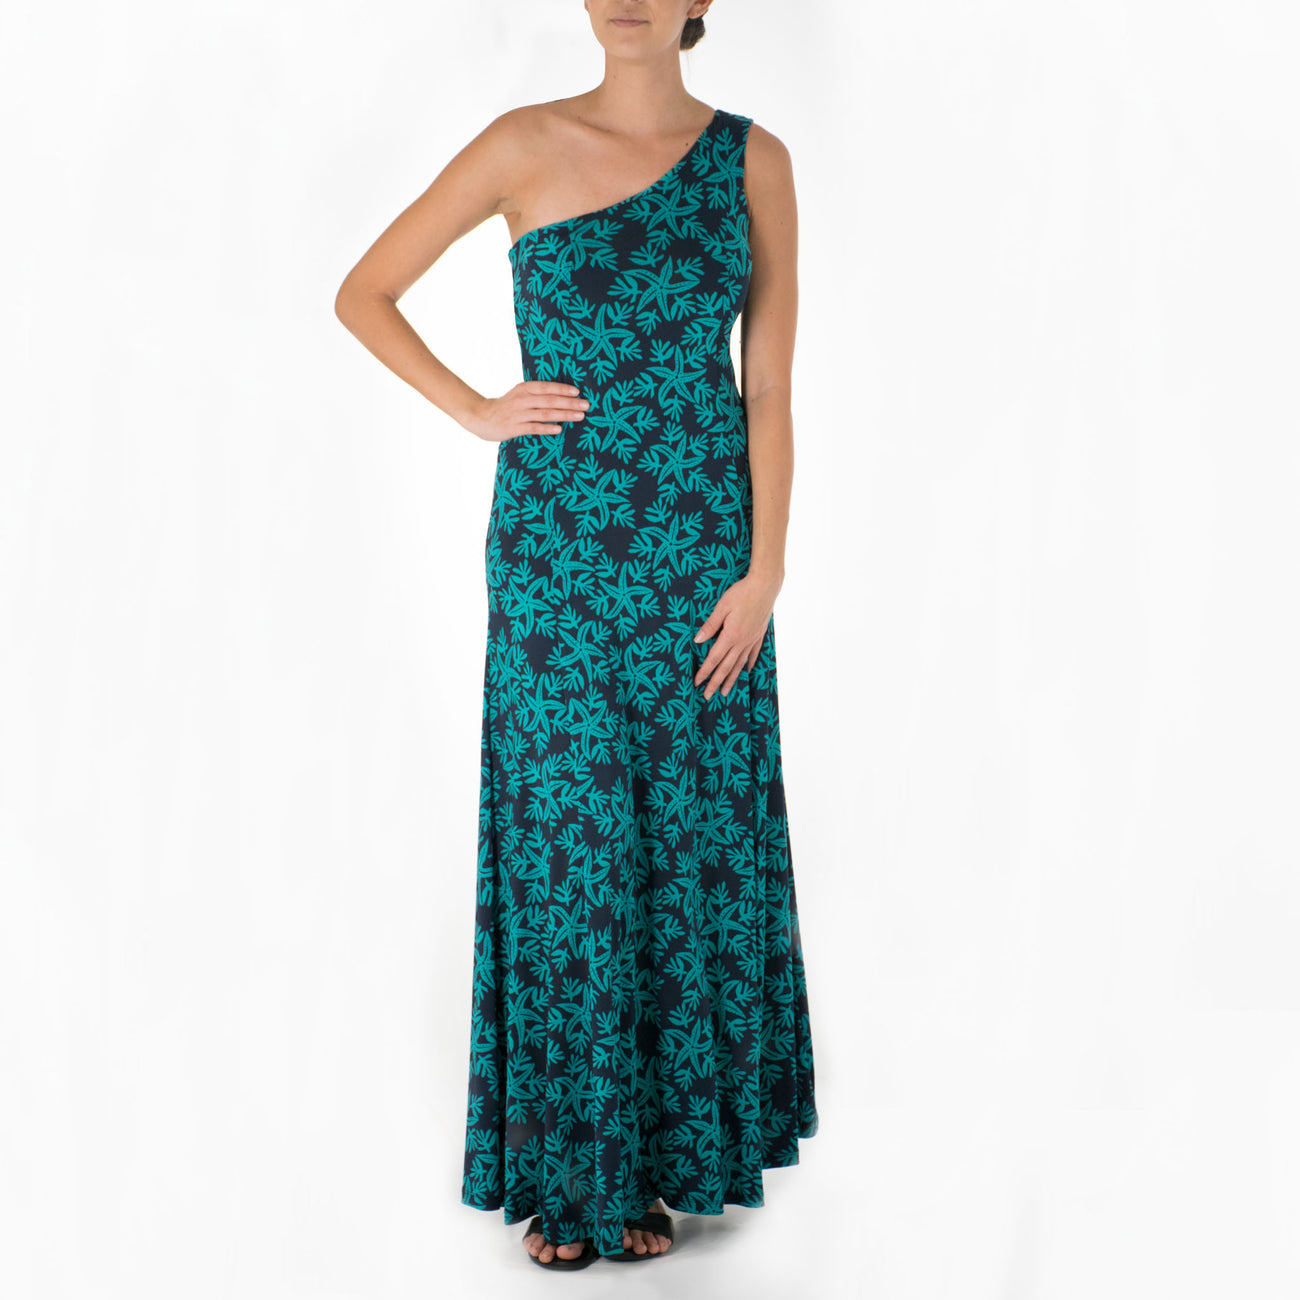 AUKAI ONE SHOULDER HULA DRESS